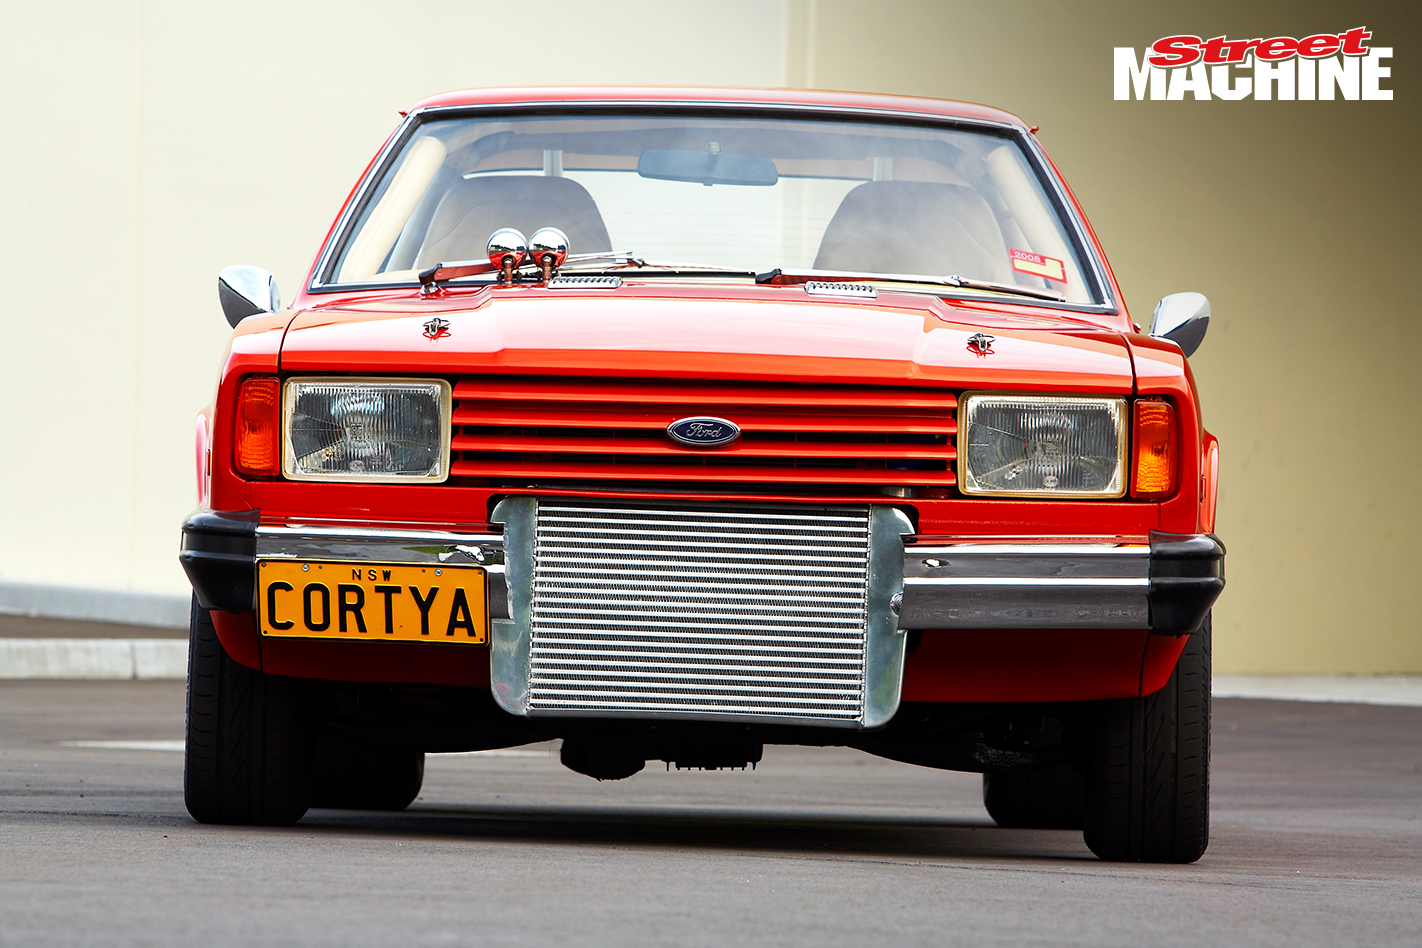 Ford Cortina TE Turbo Six 3 Nw